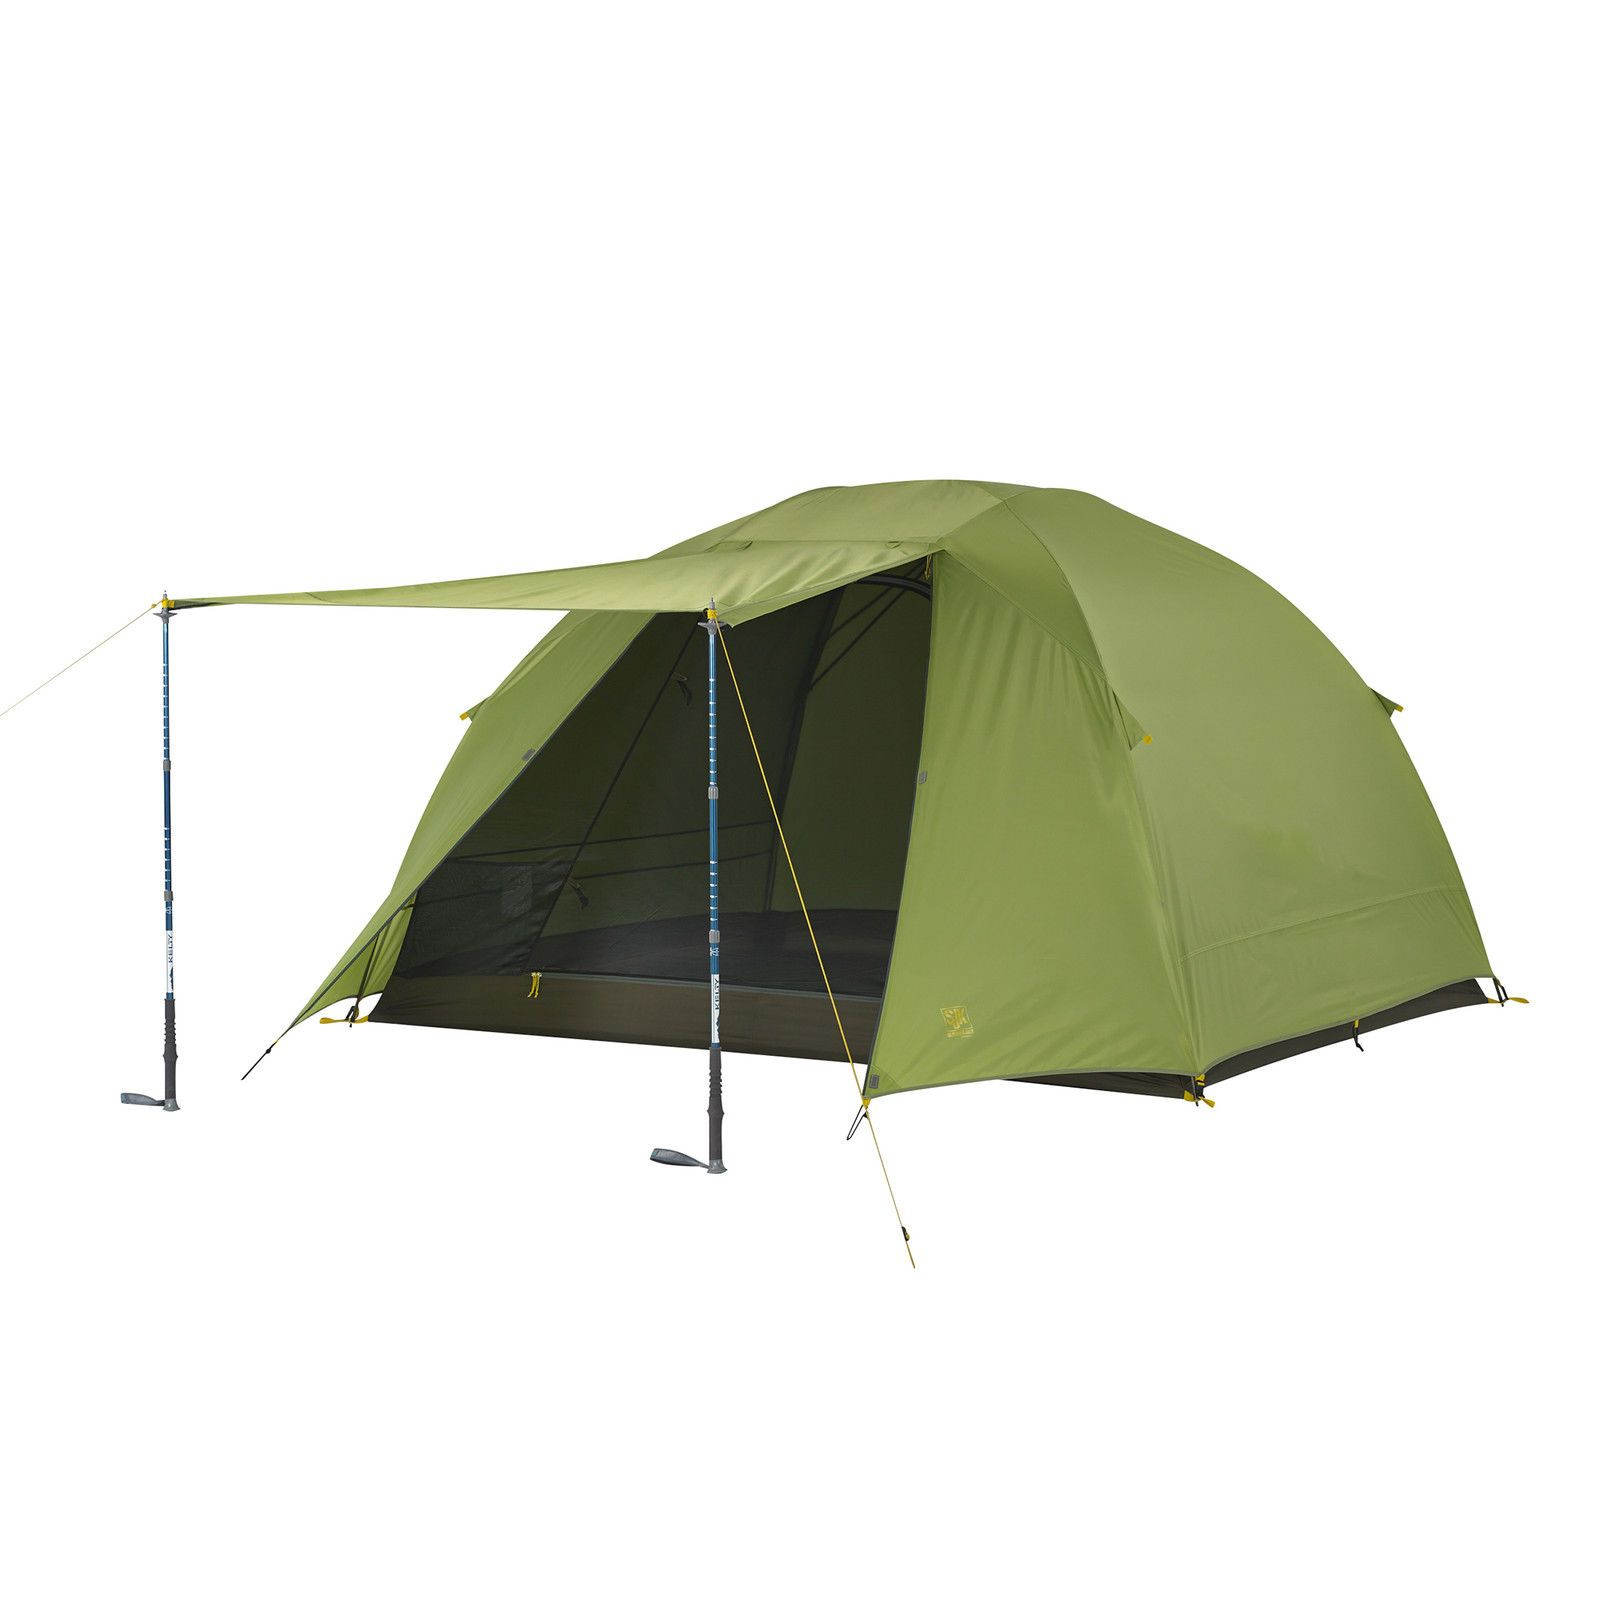 Slumberjack Daybreak 4 Person 3 Season C&ing/Hunting Tent w/ Full Coverage Fly  sc 1 st  Pinterest & Slumberjack Daybreak 4 Person 3 Season Camping/Hunting Tent w ...